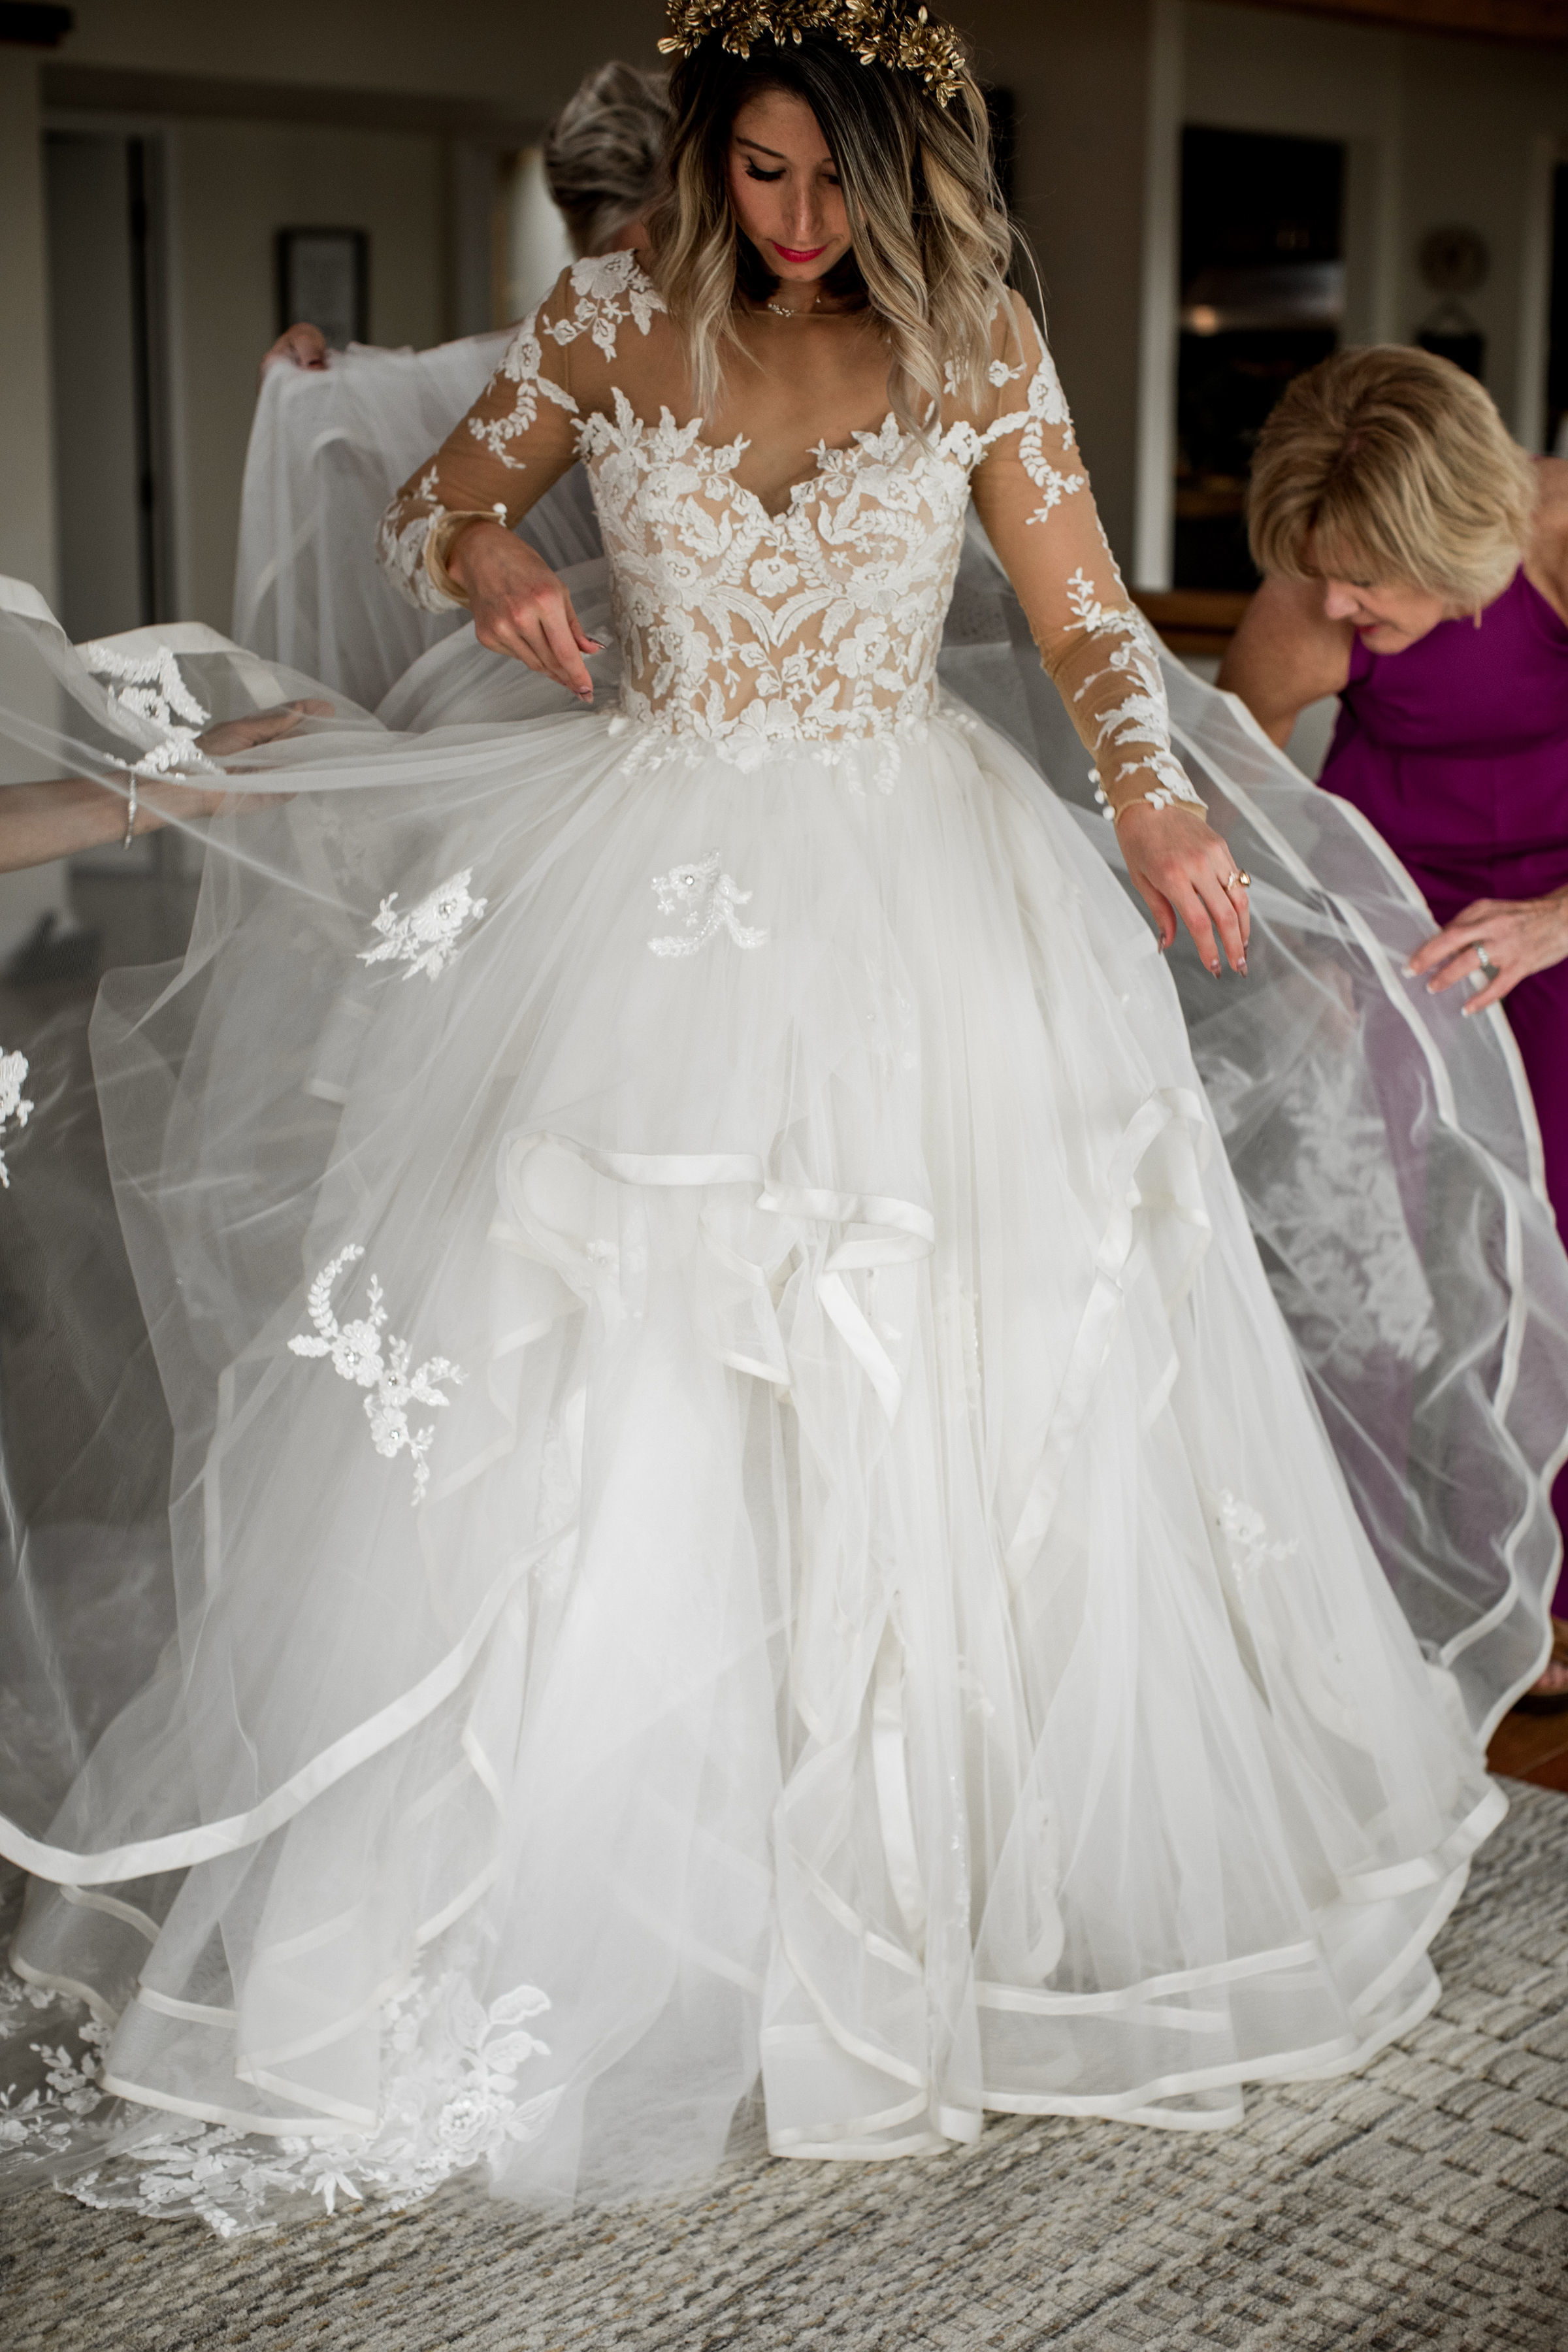 Anomalie Online Custom Wedding Dresses can create your dream dress with tiers, ruffles, longsleeves, and lace.